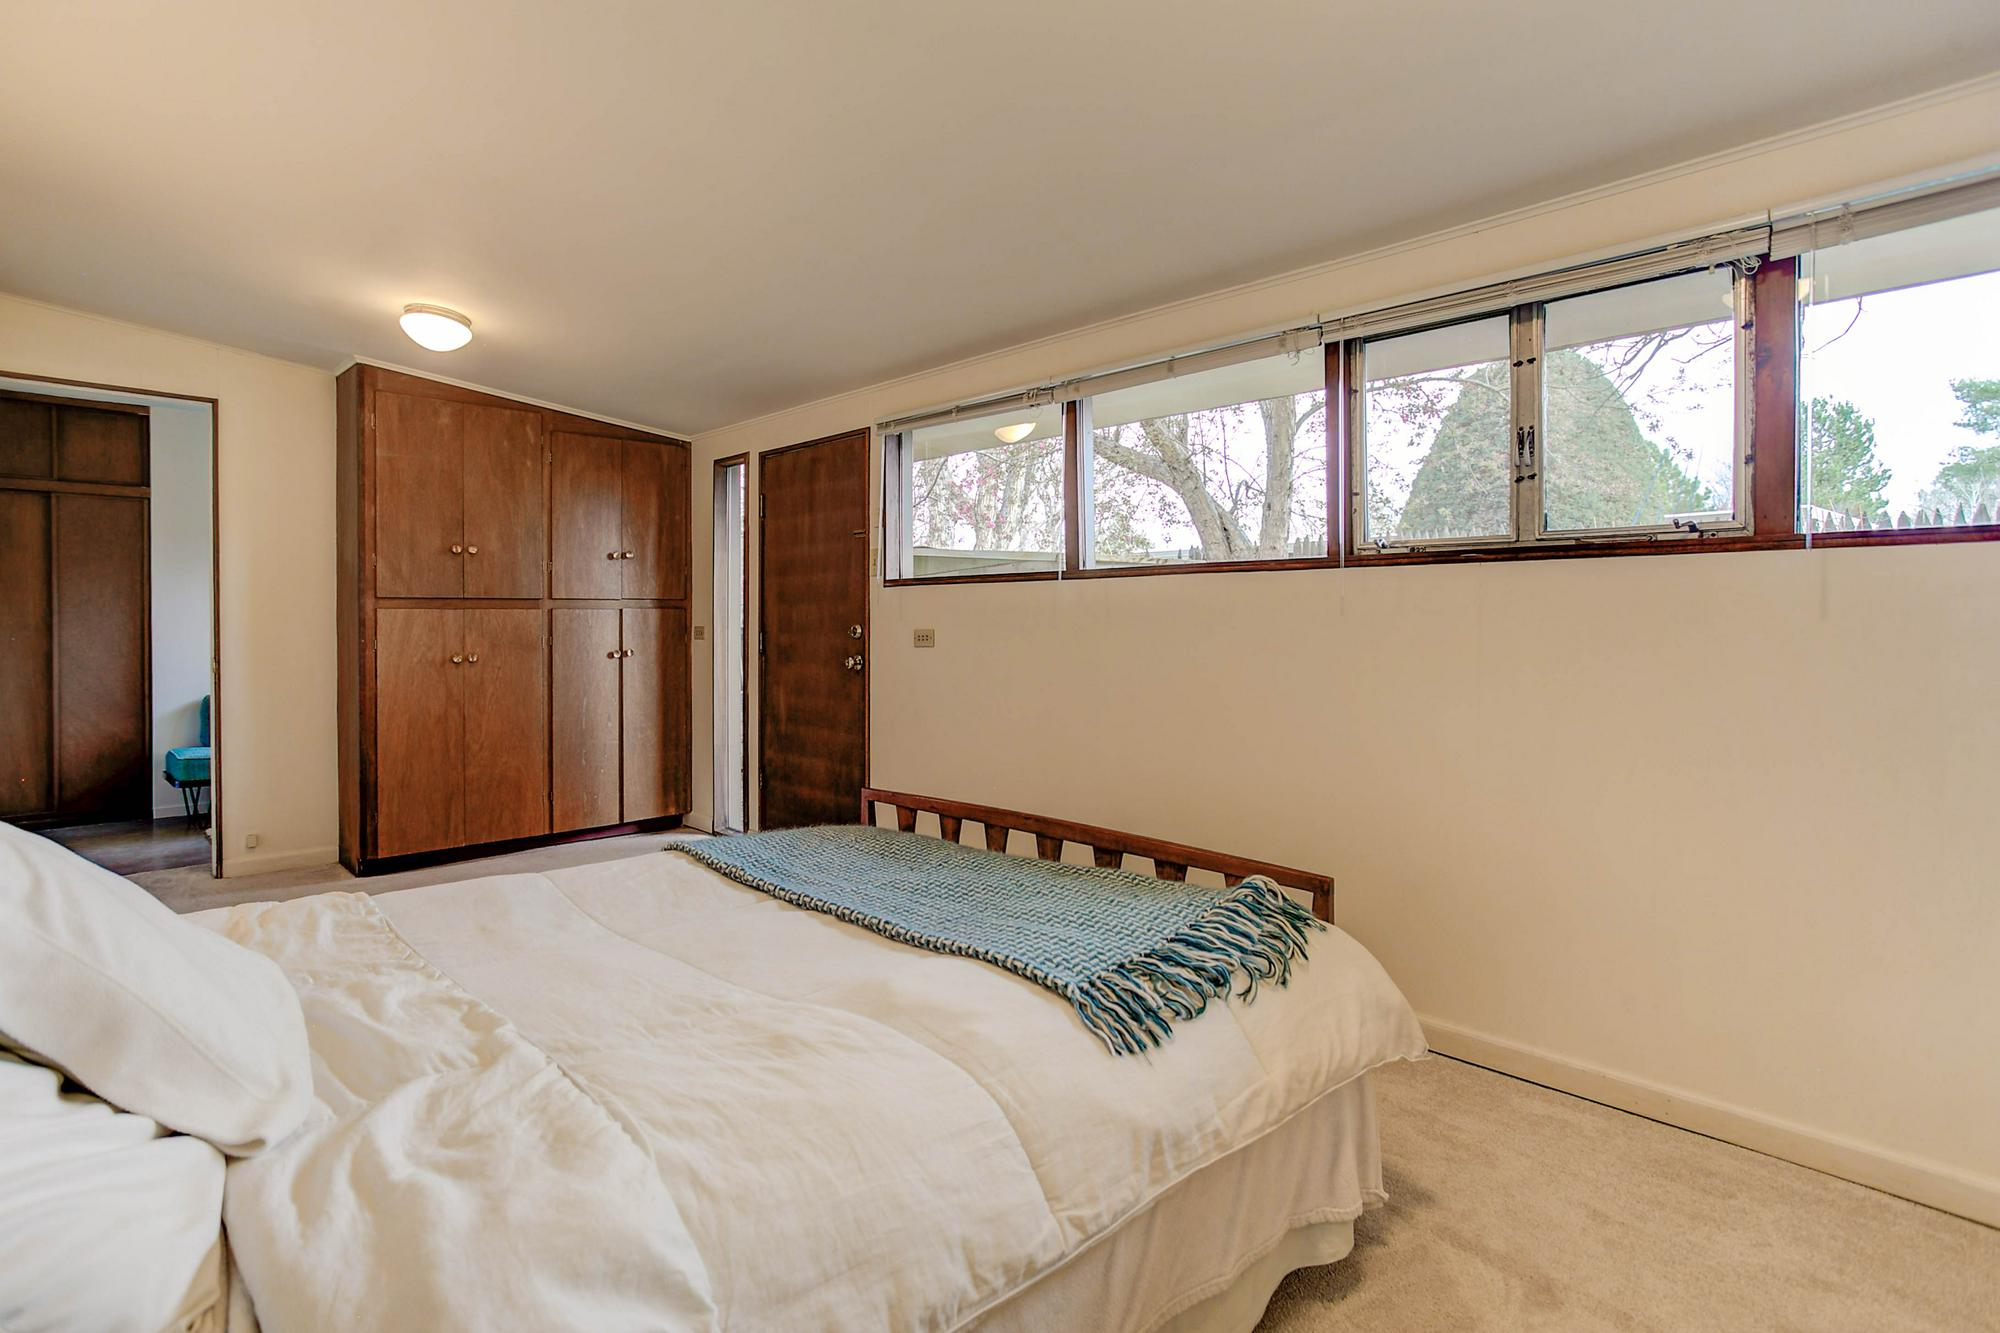 Listassistimage-84047-web_ready-3011%2bsouth%2bfranklin%2bstreet_masterbedroome-2000x2000